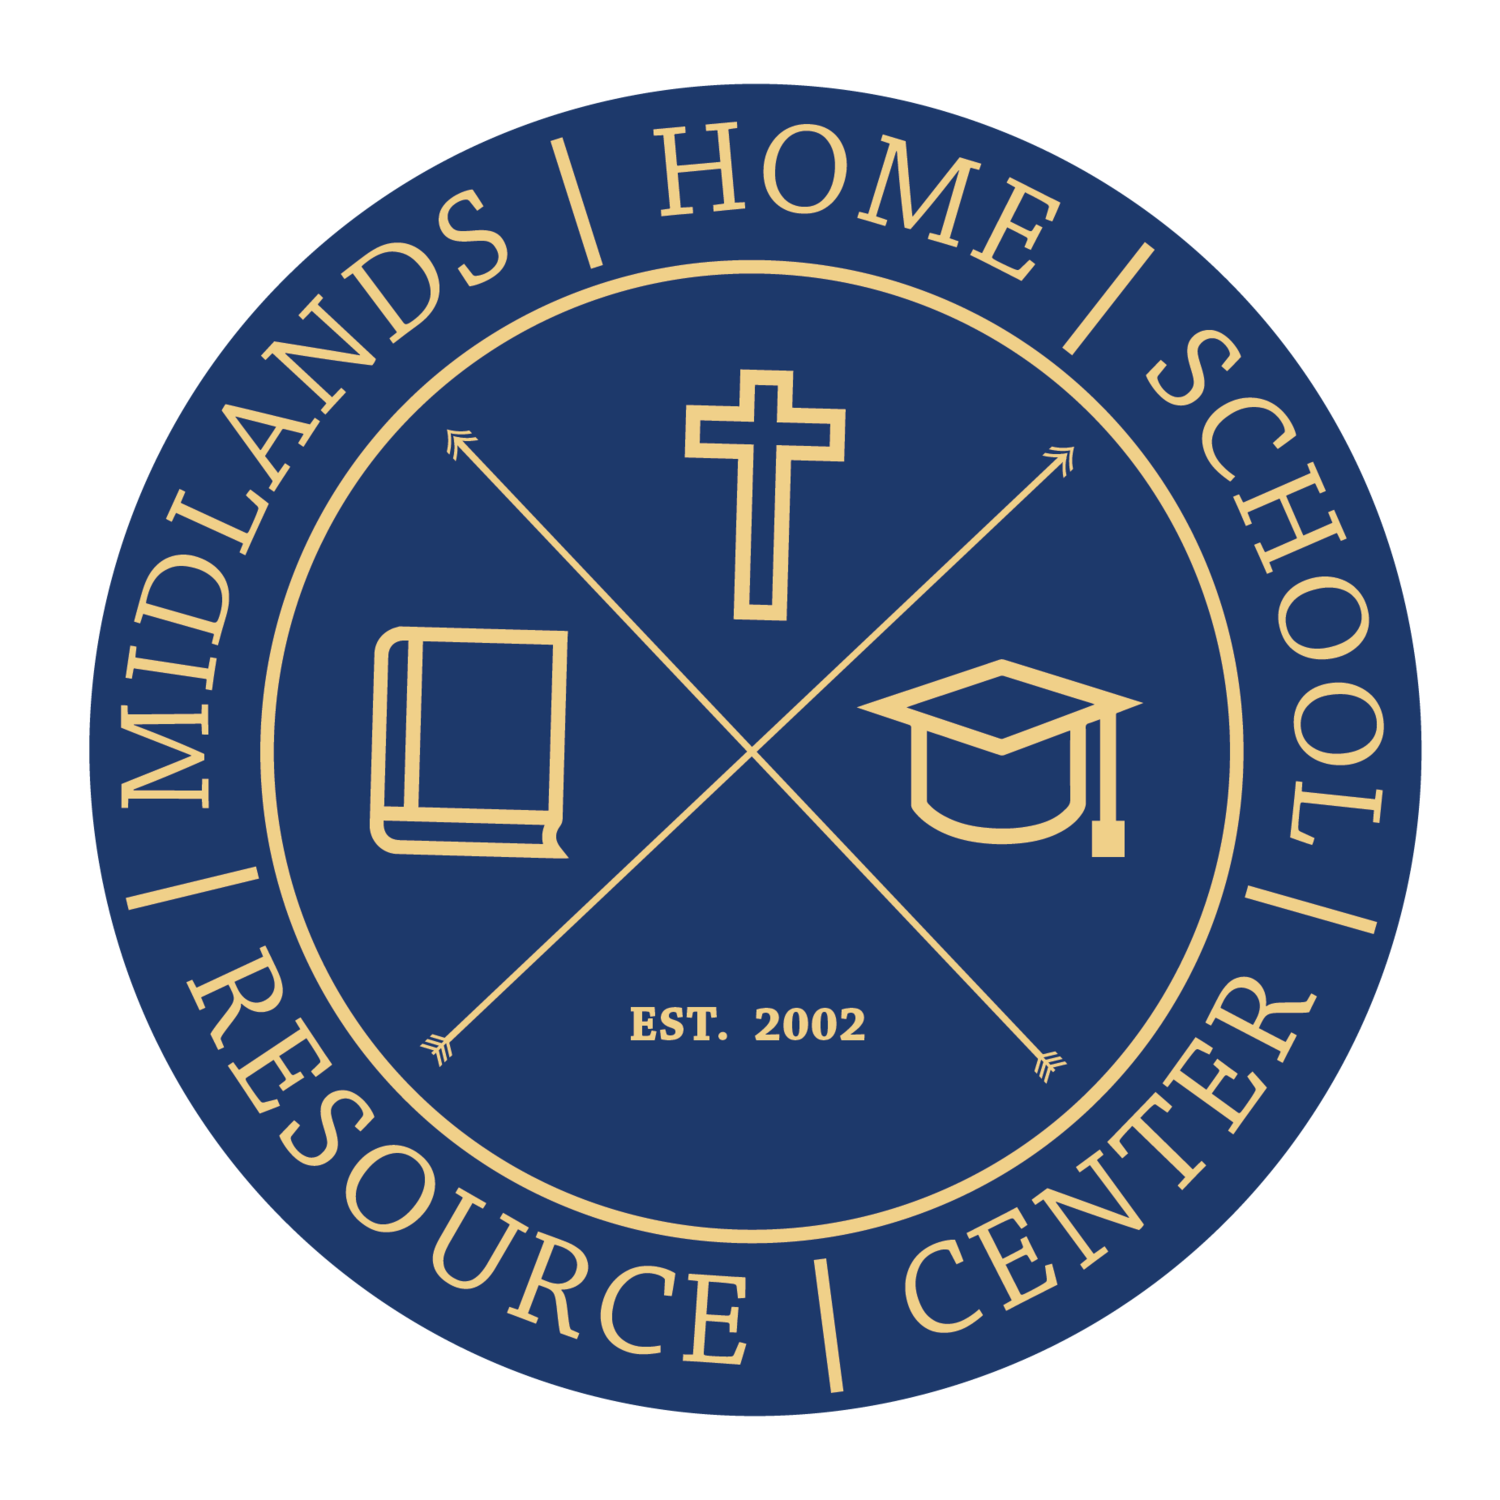 Midlands Home School Resource Center